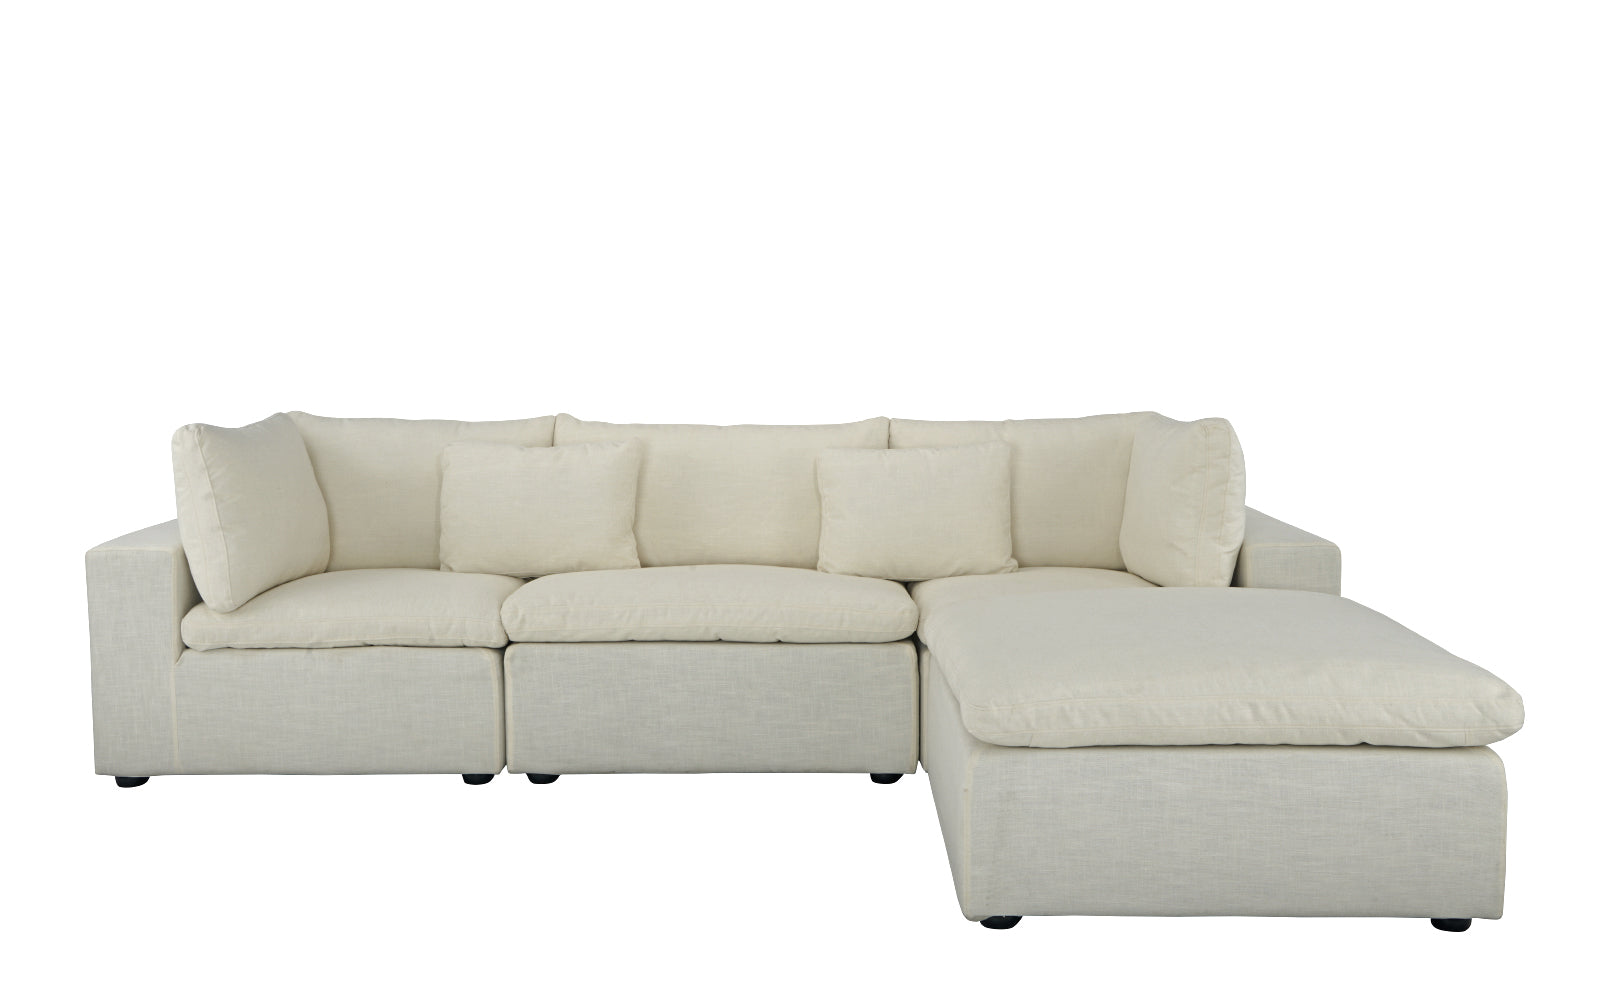 Ordinaire Fitz Contemporary Low Profile Lounge Sofa With Chaise